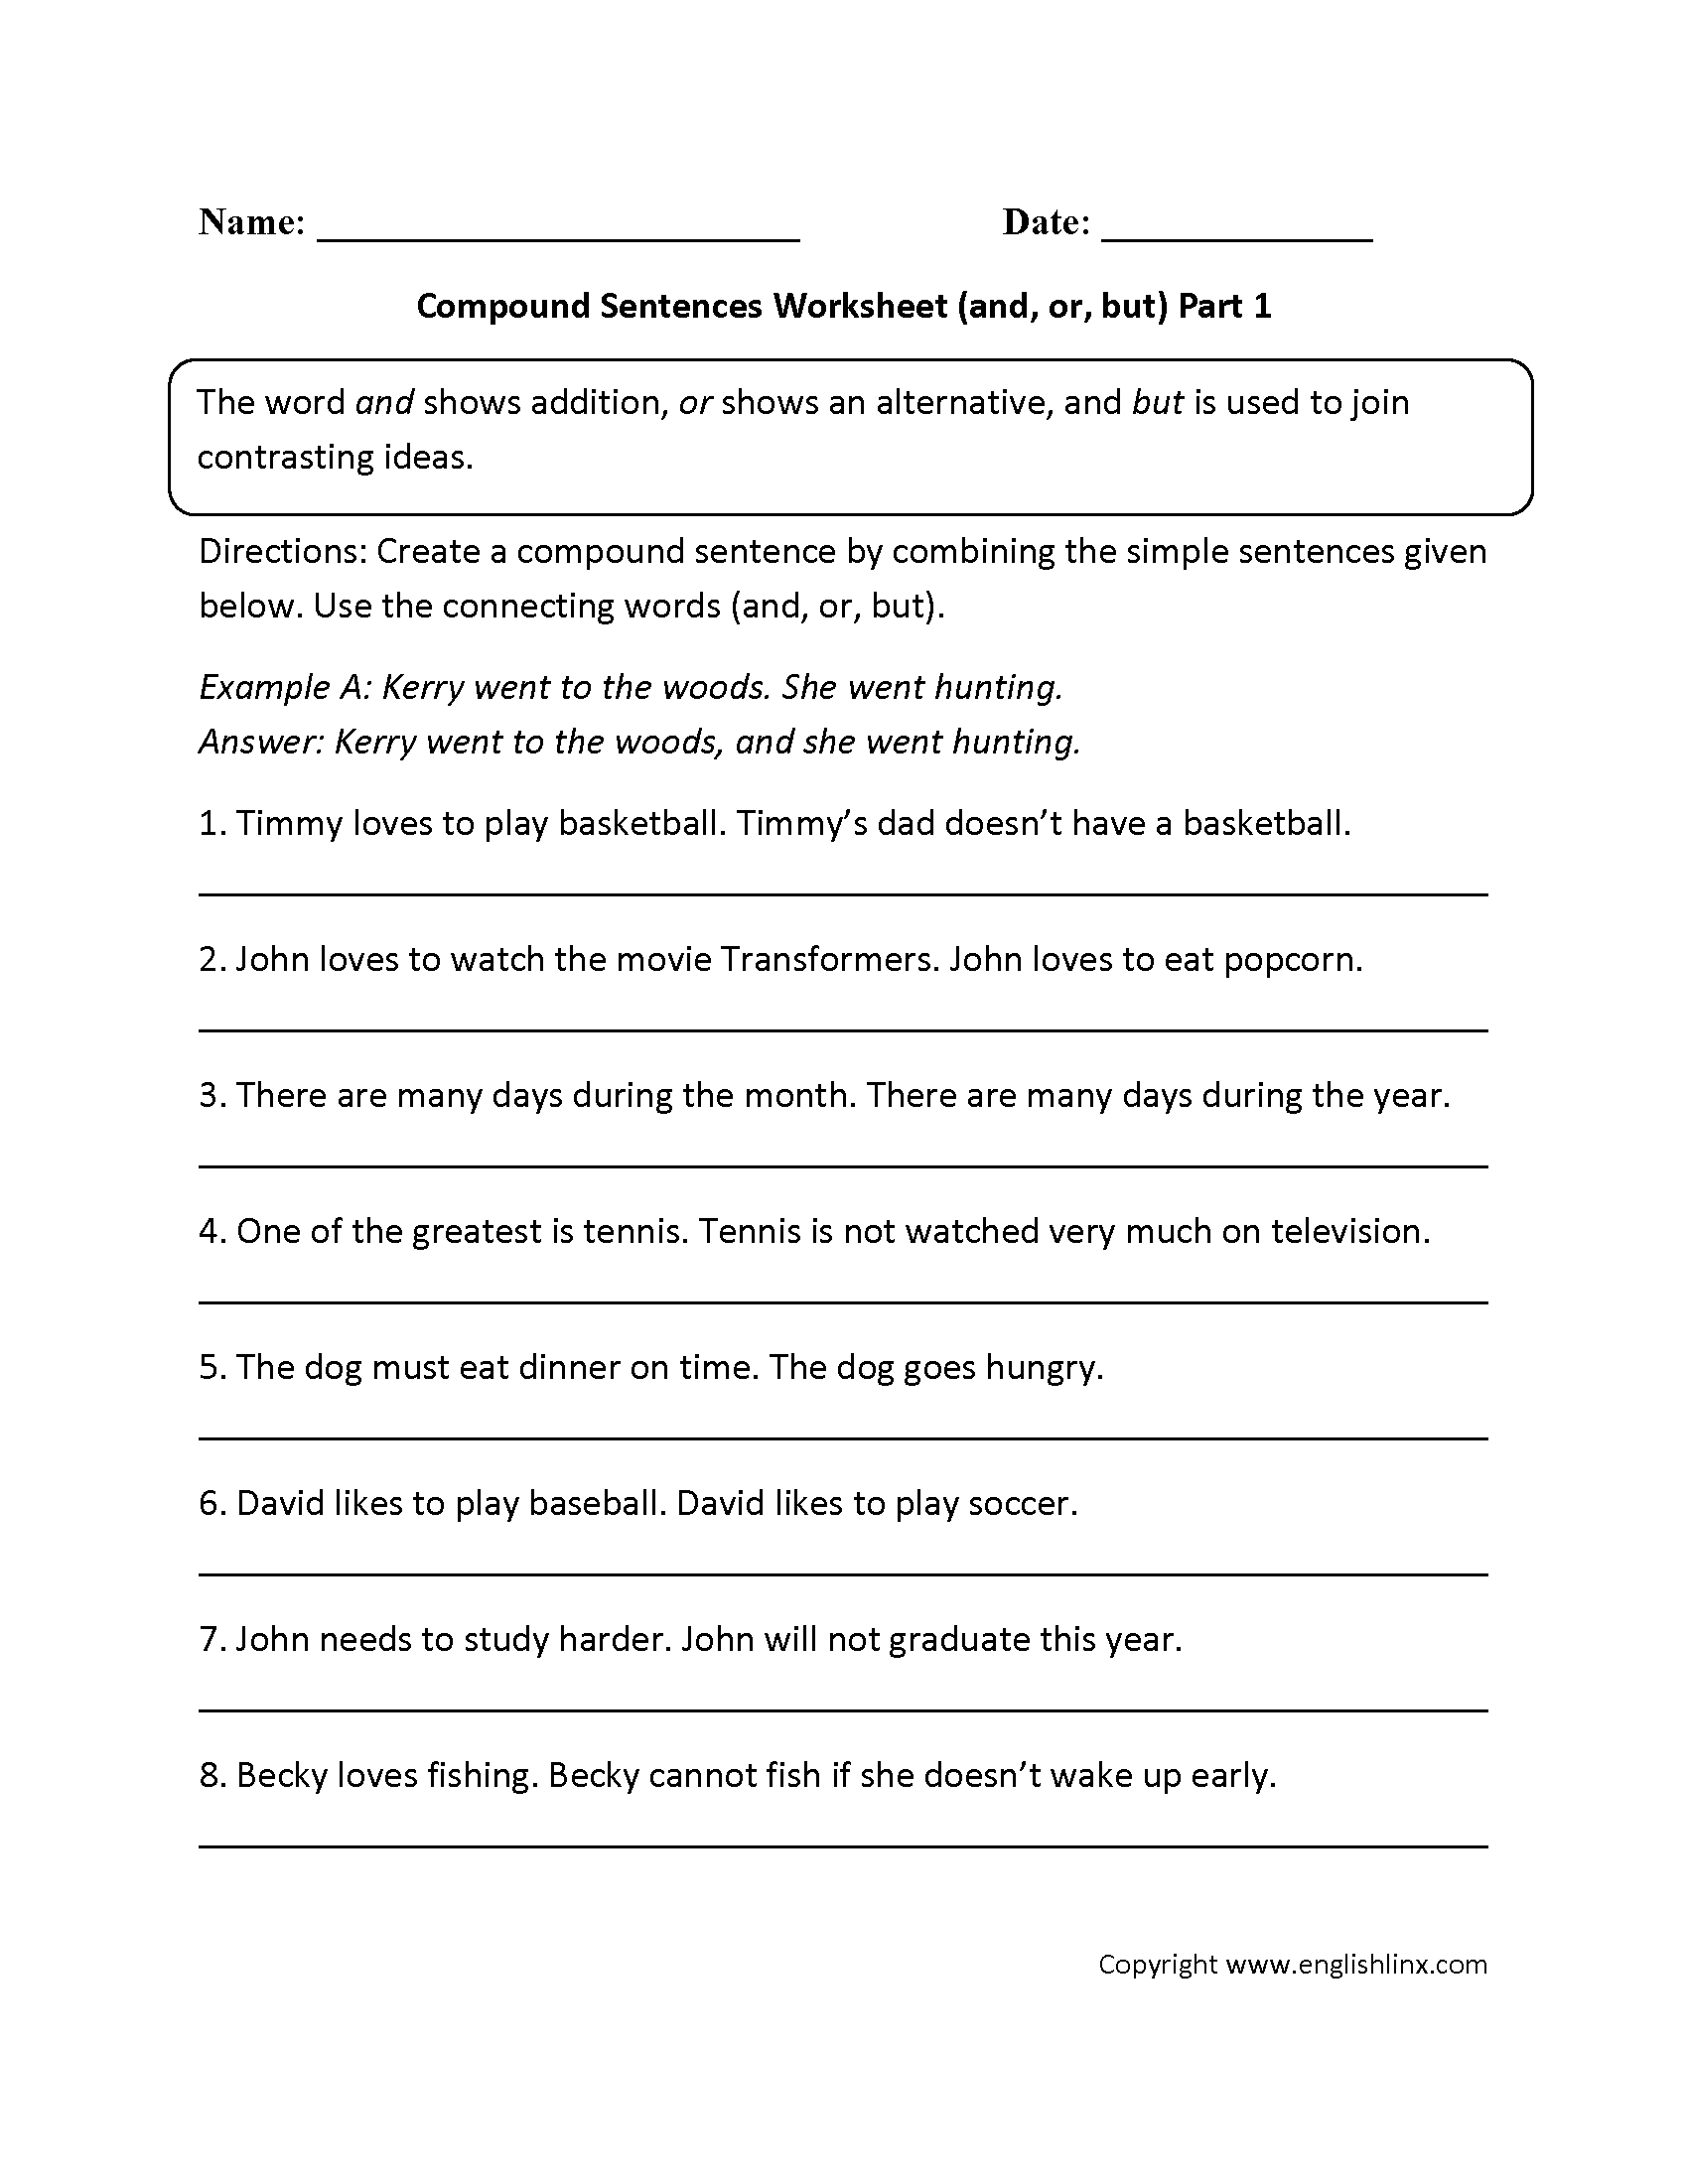 Free Worksheet Fanboys Grammar Worksheet 17 best images about compound sentences on pinterest assessment simple and robots